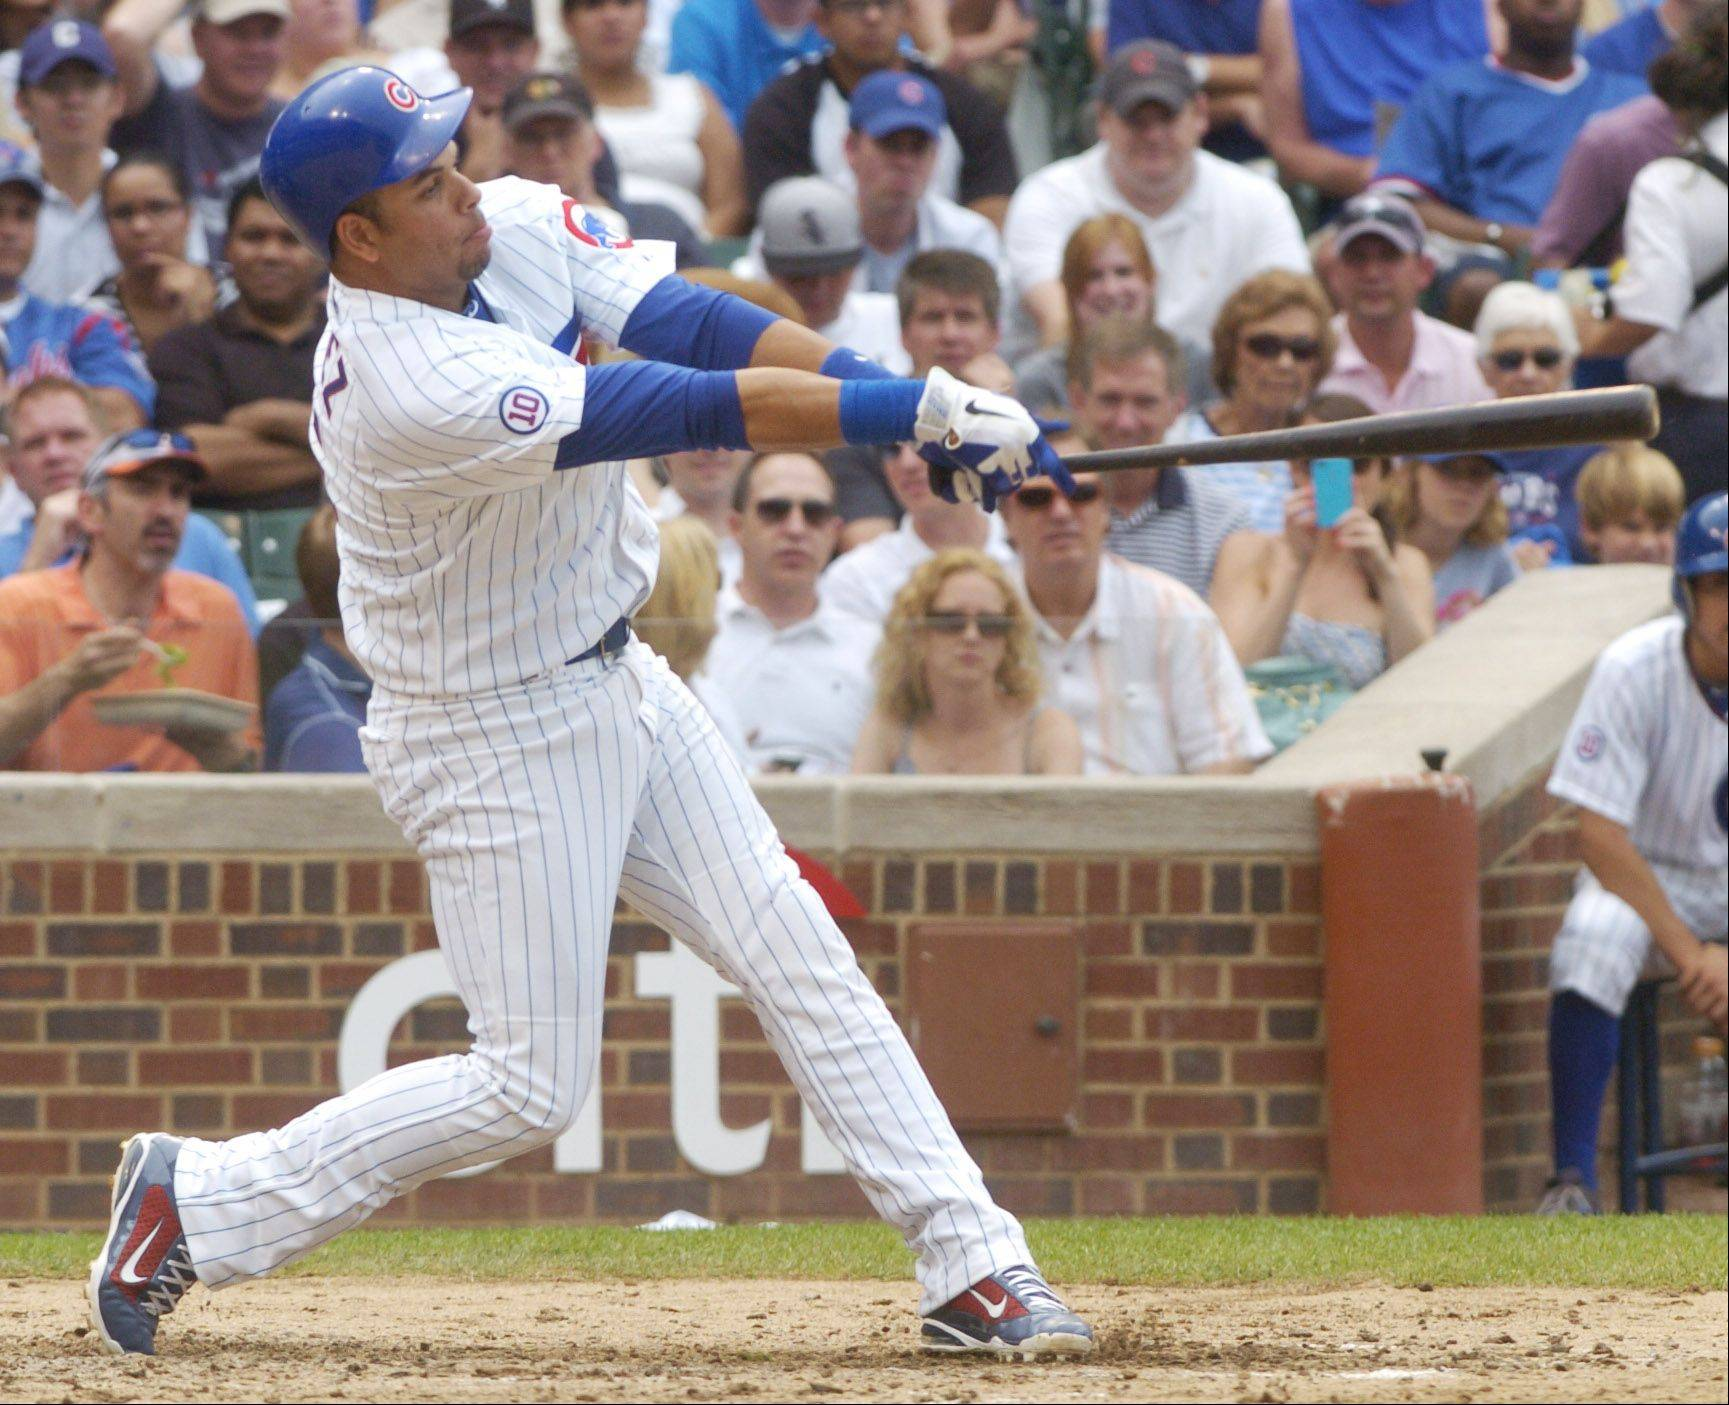 Aramis Ramirez of the Cubs hits a solo home run during the sixth inning against the White Sox.